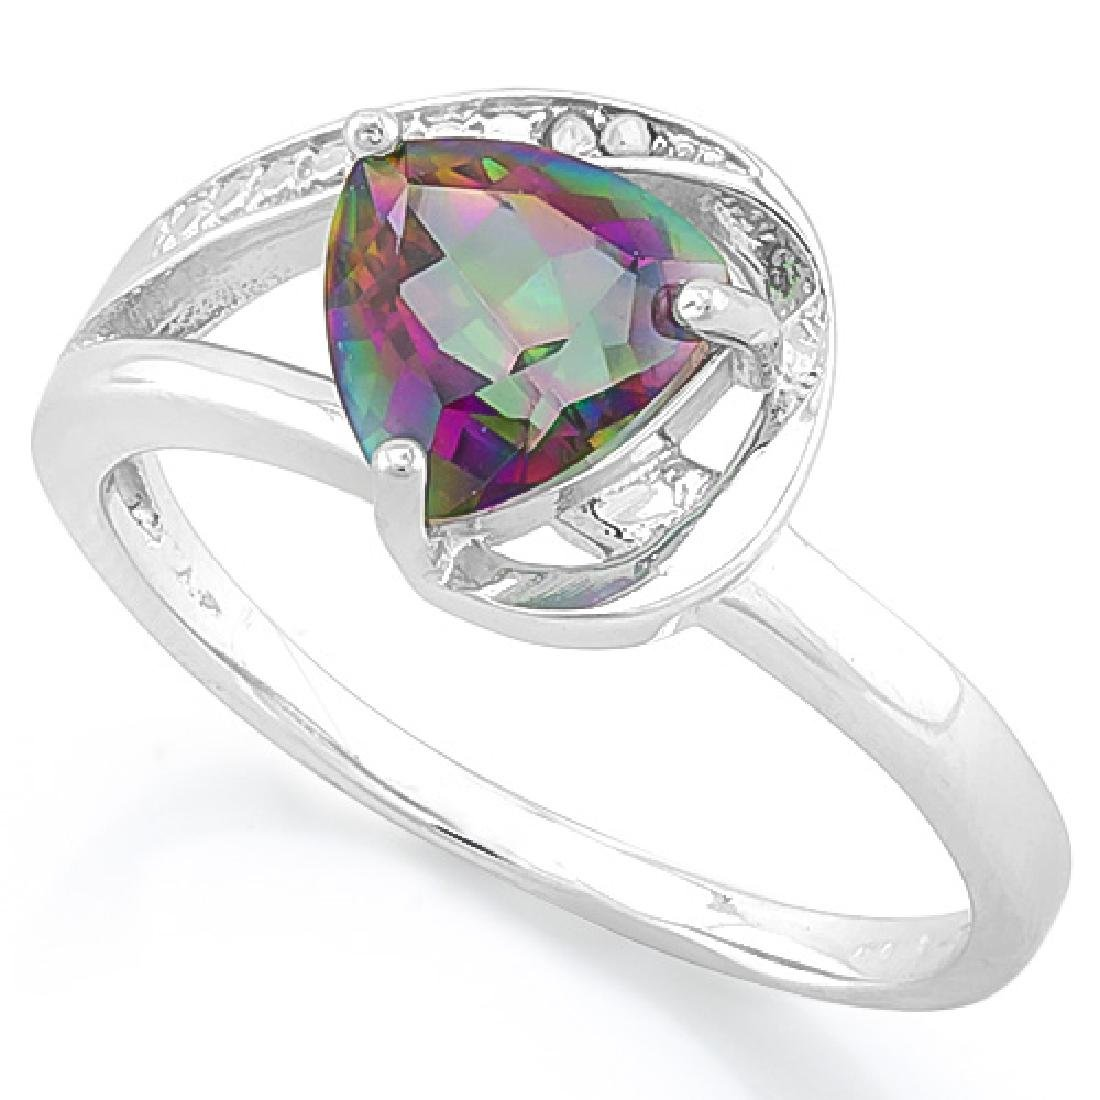 1 1/5 CARAT MYSTIC GEMSTONE & DIAMOND 925 STERLING SILV